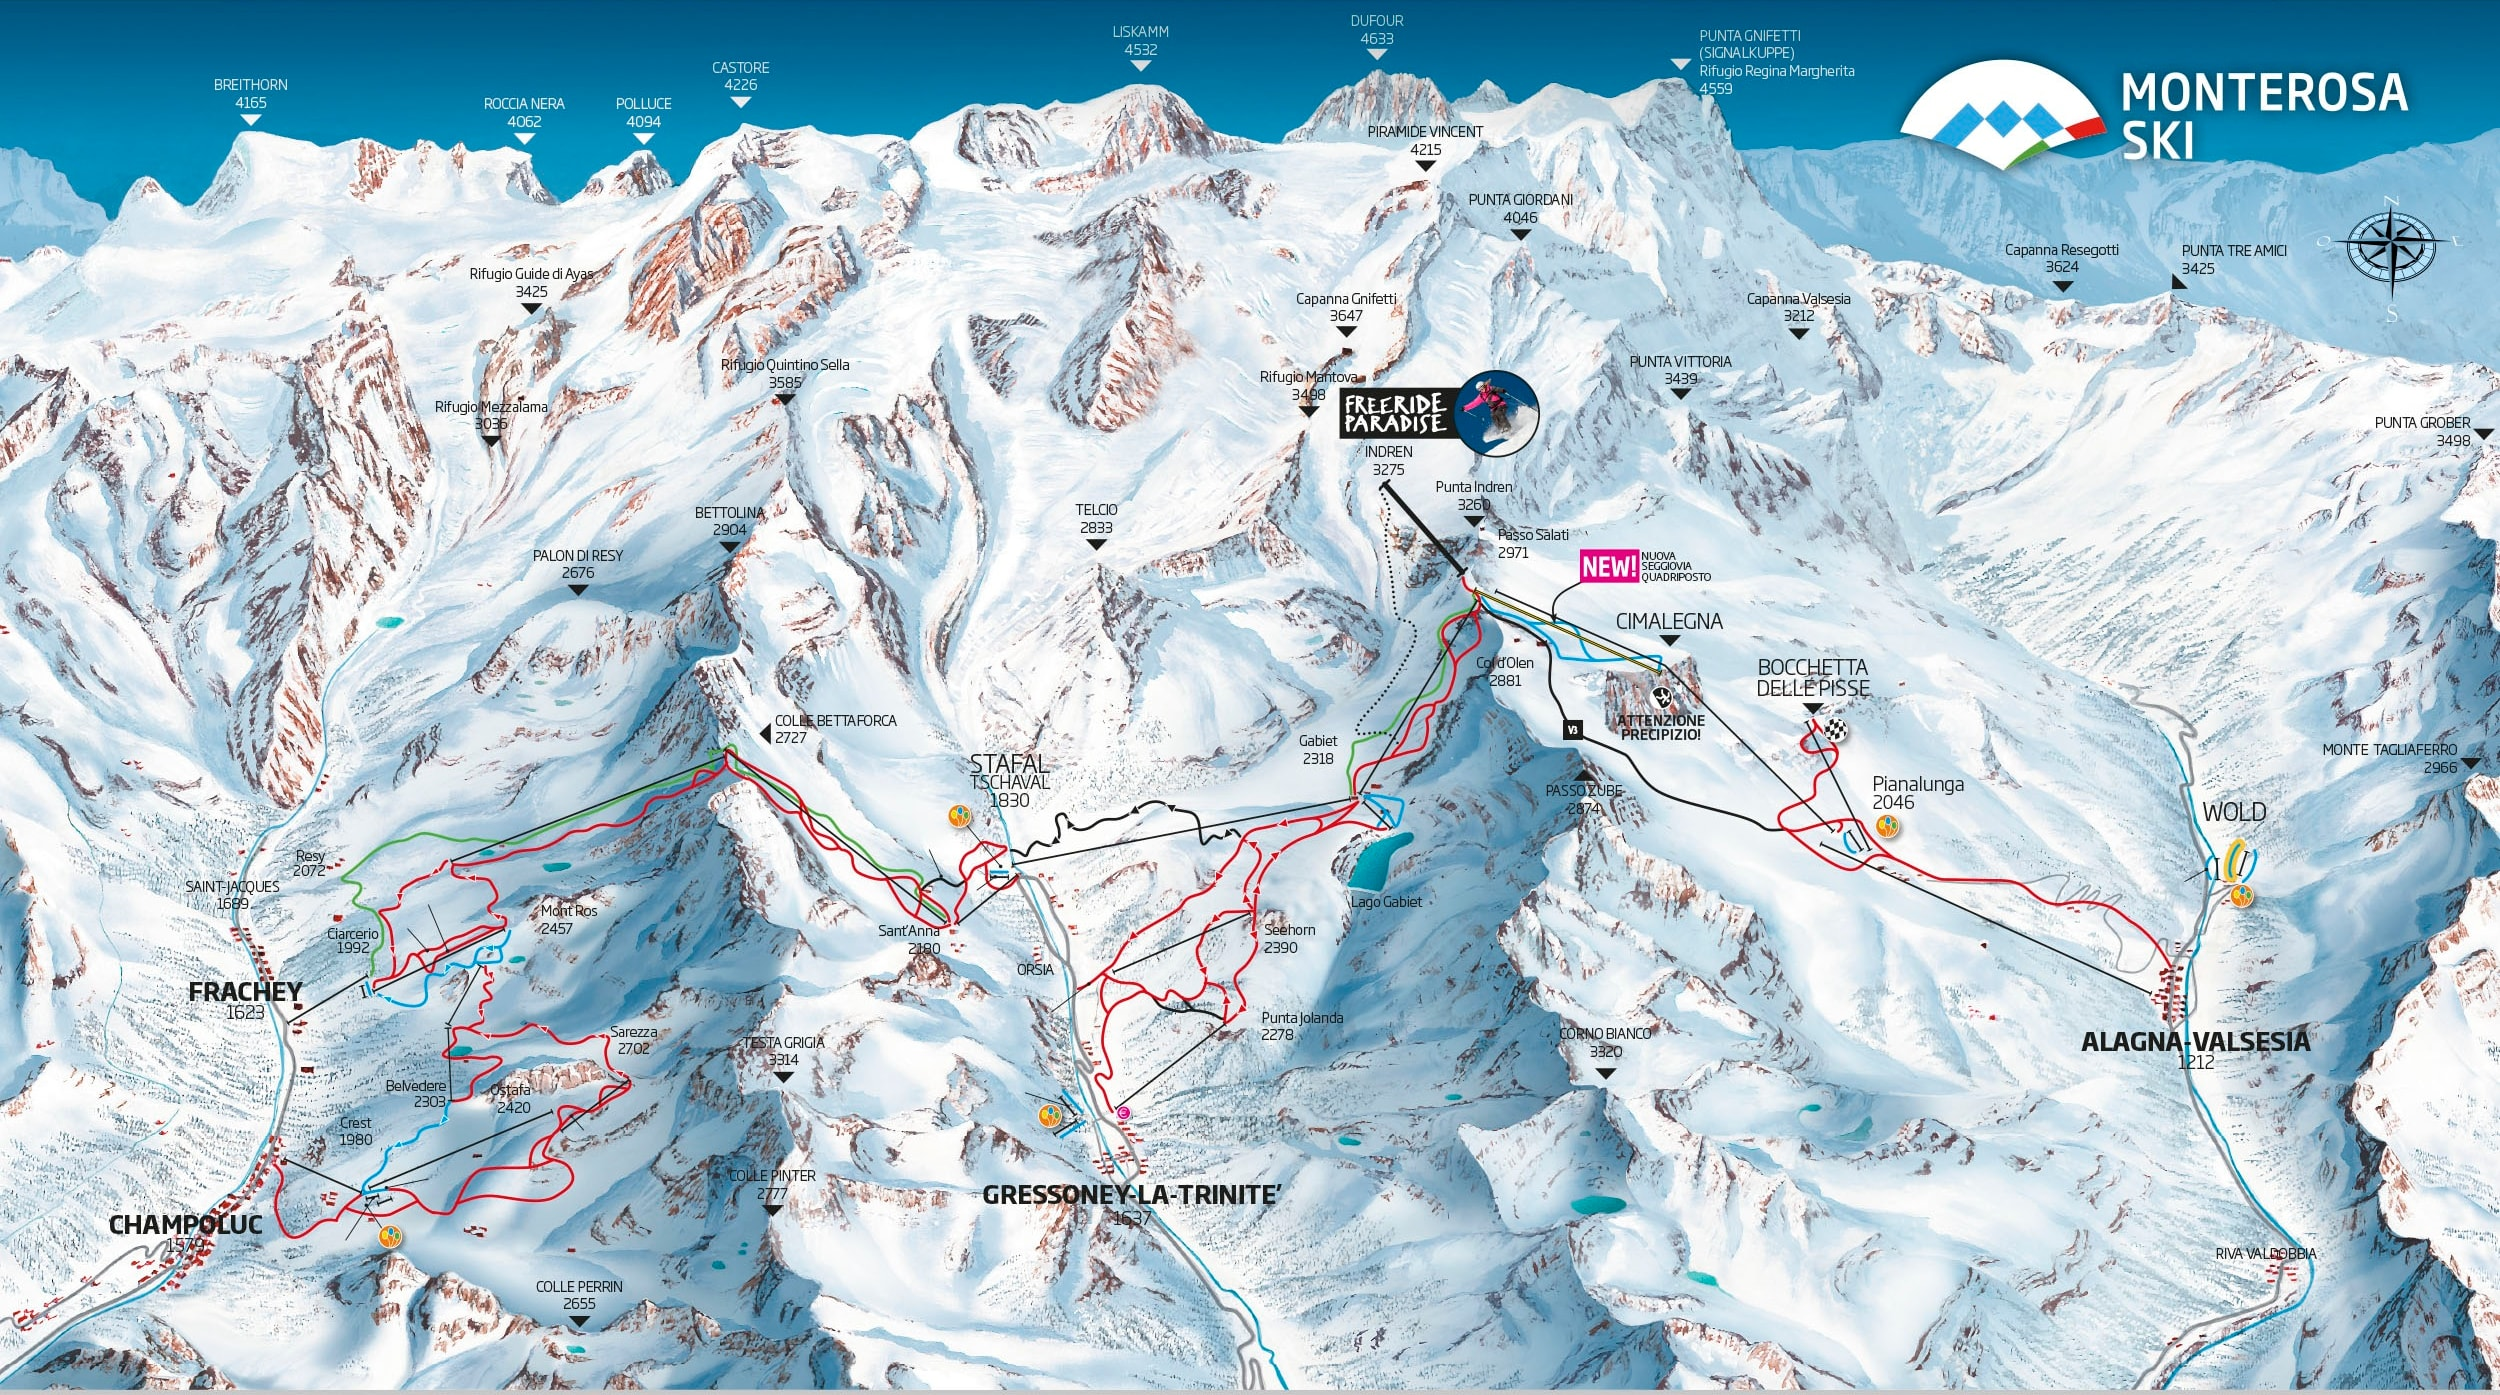 Gressoney-la-Trinite Piste / Trail Map